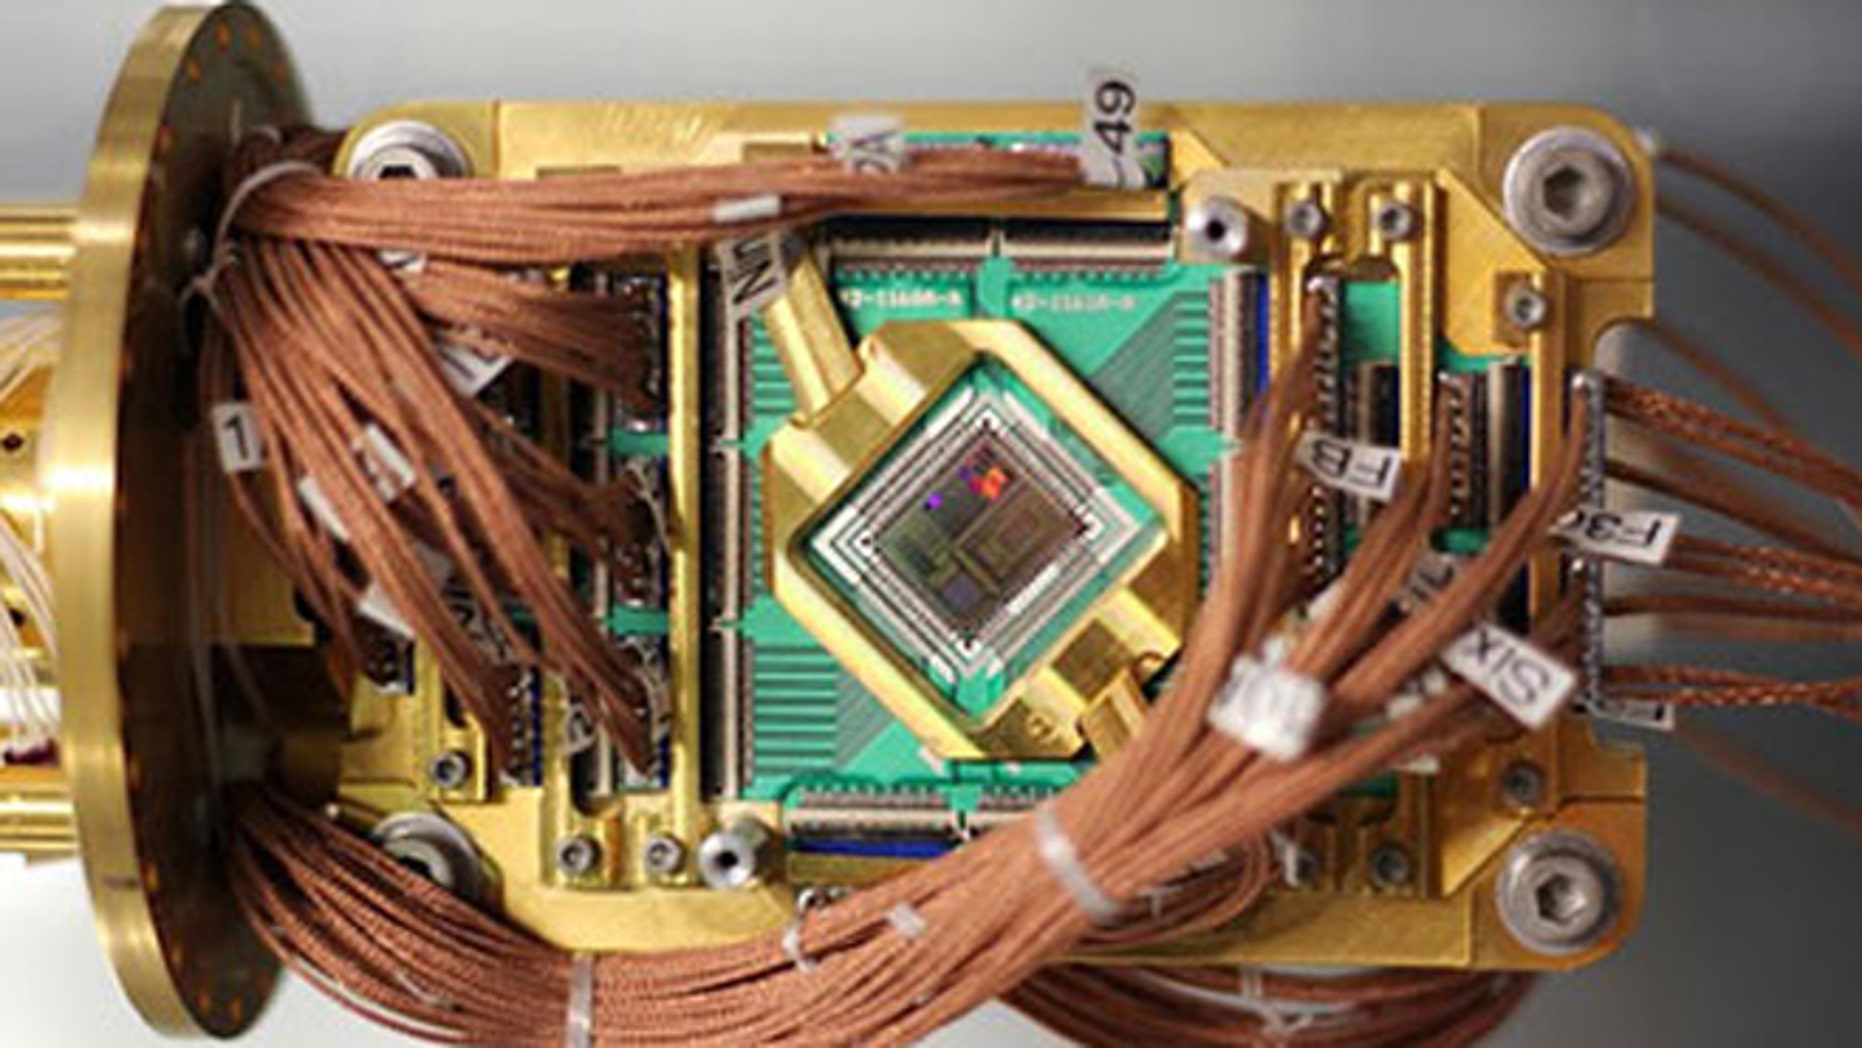 An experimental computer made by a Canadian company has proved its ability to solve increasingly complex mathematical problems. But is it quantum mechanics?